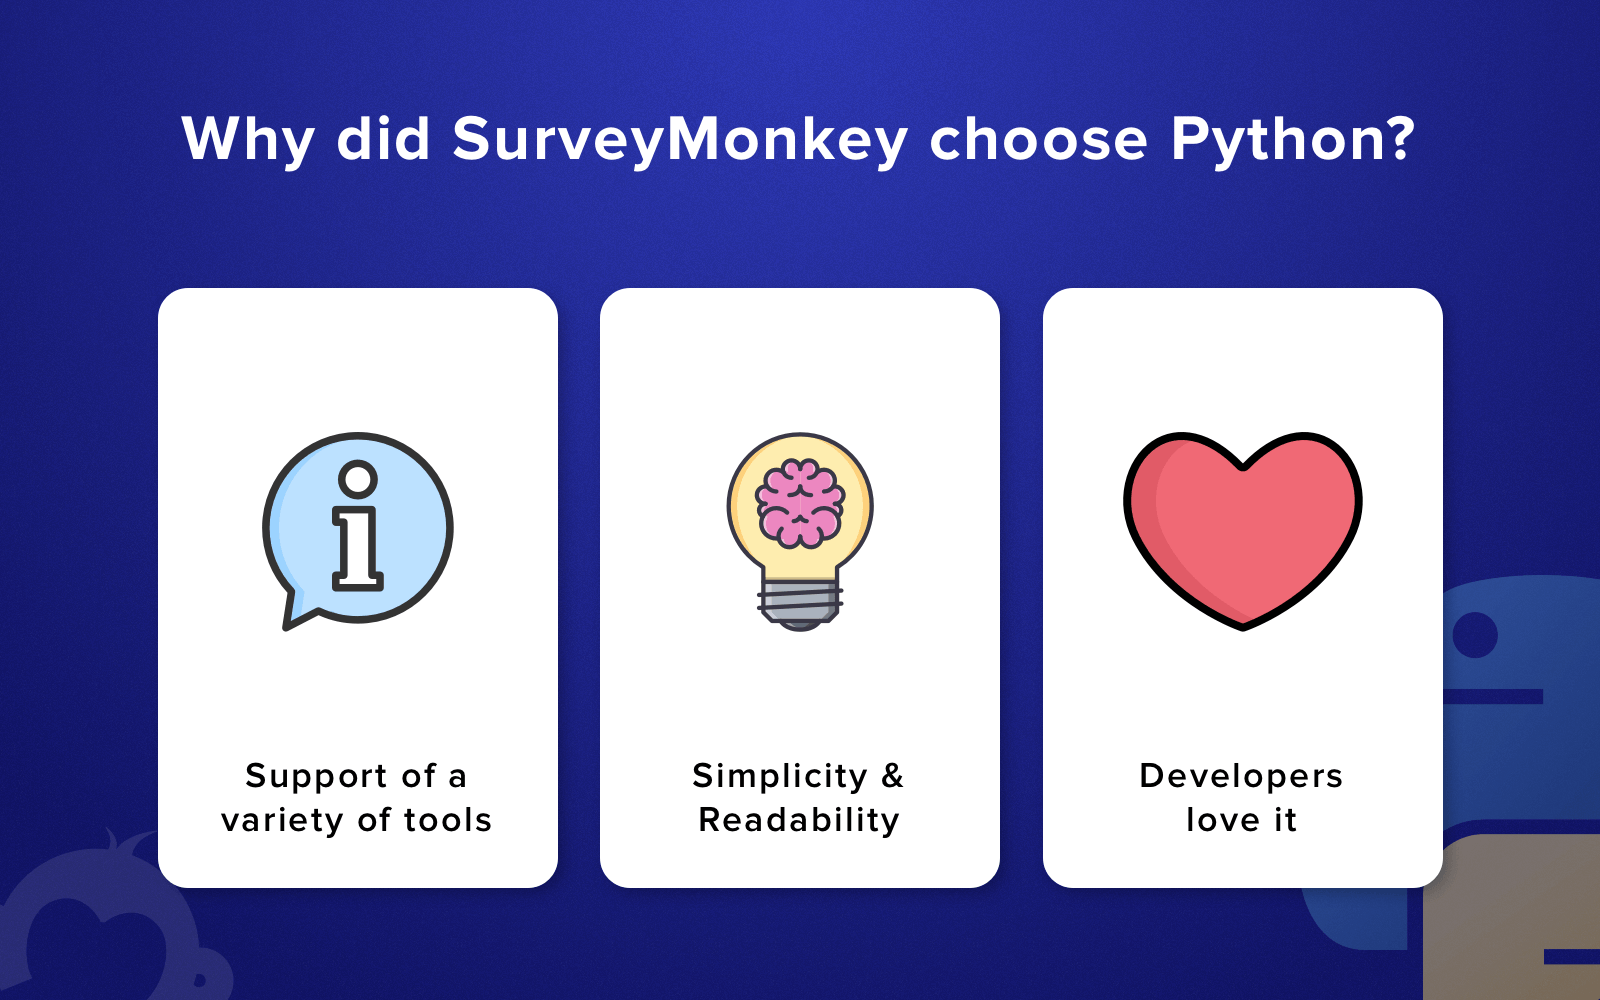 Advantages of Python: Why did SurveyMonkey choose it